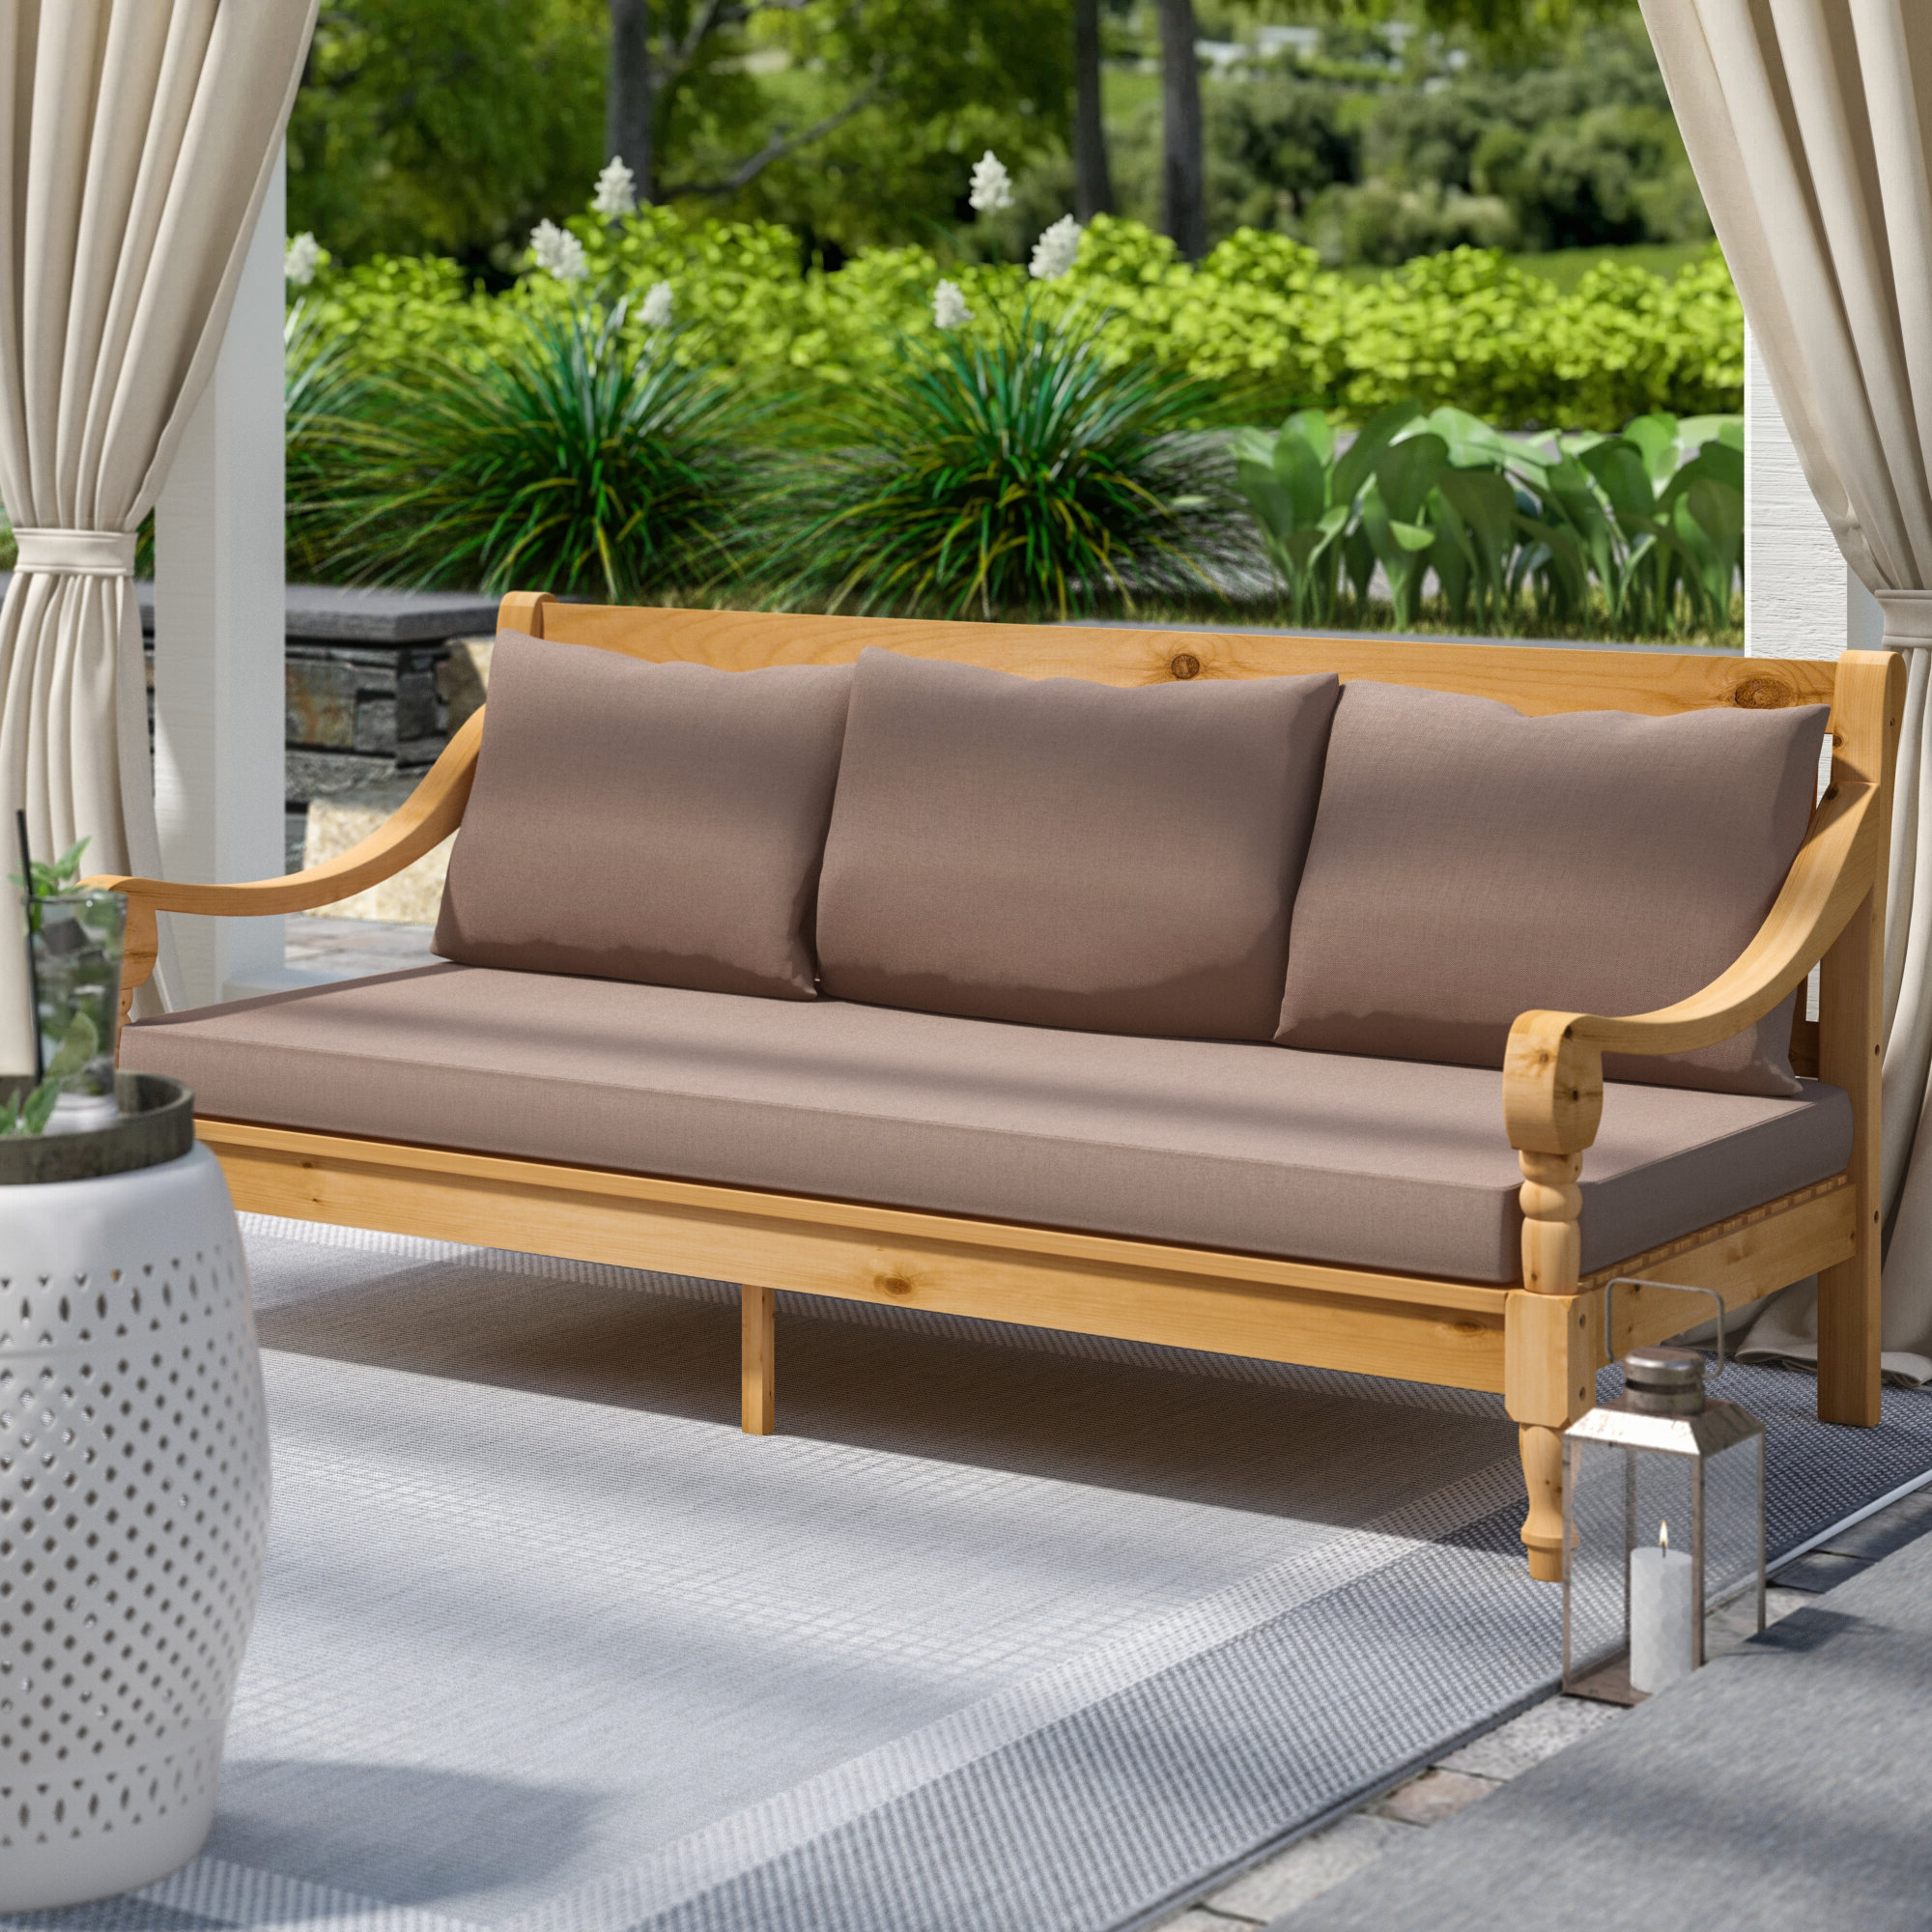 Roush Teak Patio Daybed With Cushions With Preferred Beal Patio Daybeds With Cushions (Gallery 18 of 25)